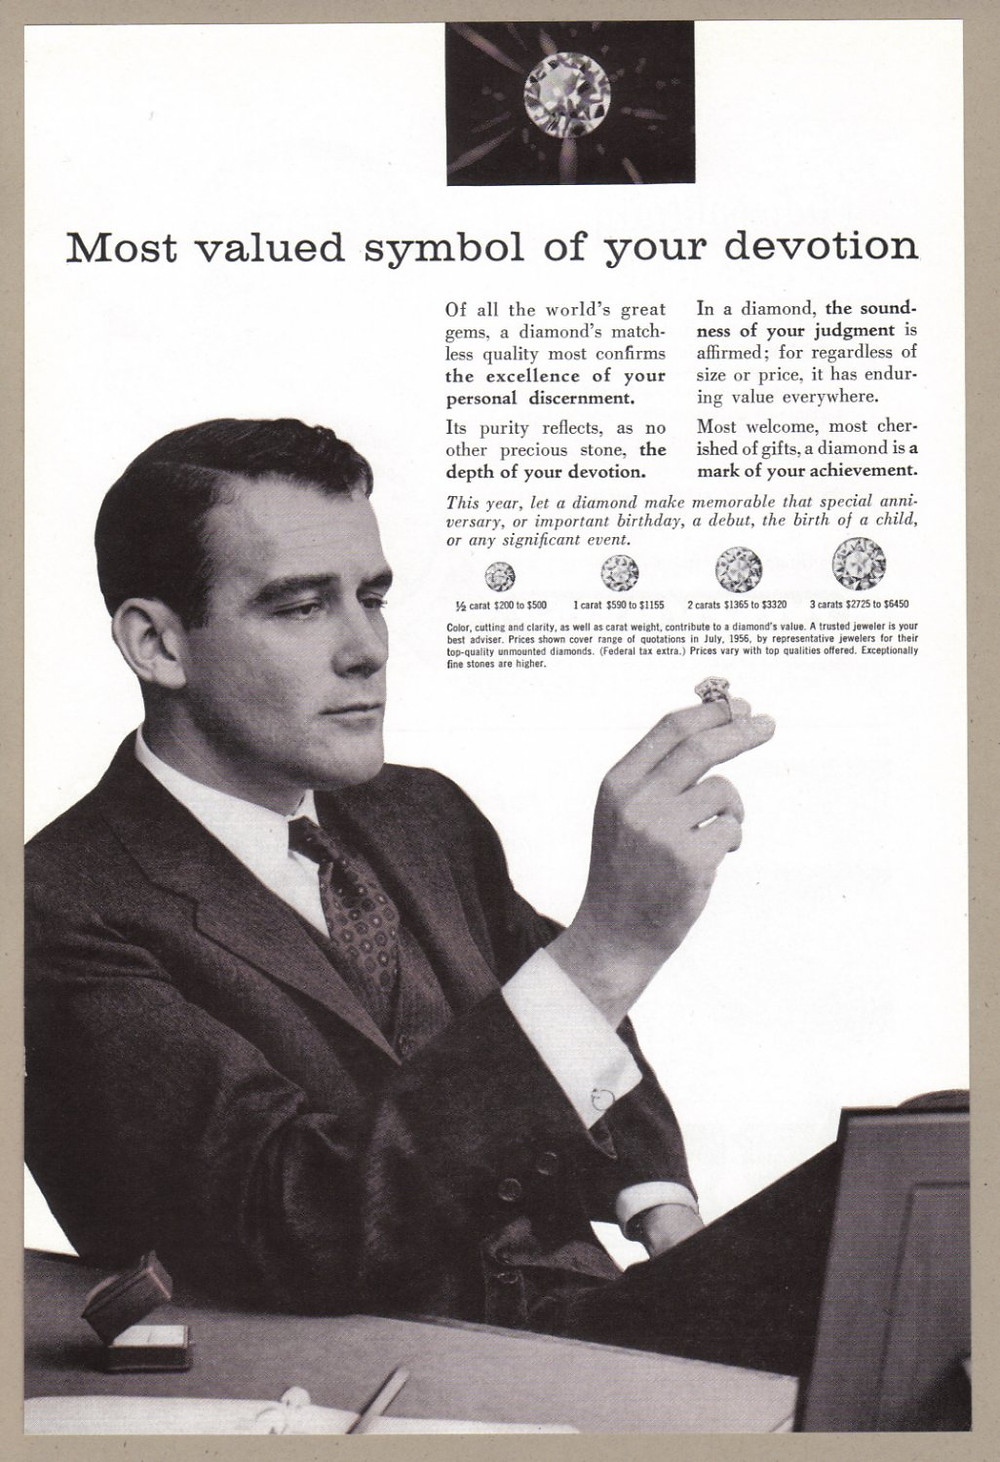 old advertisement, old diamond advertisement, old engagement ring advertisement, man in suit, man diamonds, tie, suit coat, jewelry box, picture frame, pen, pencil, paper,